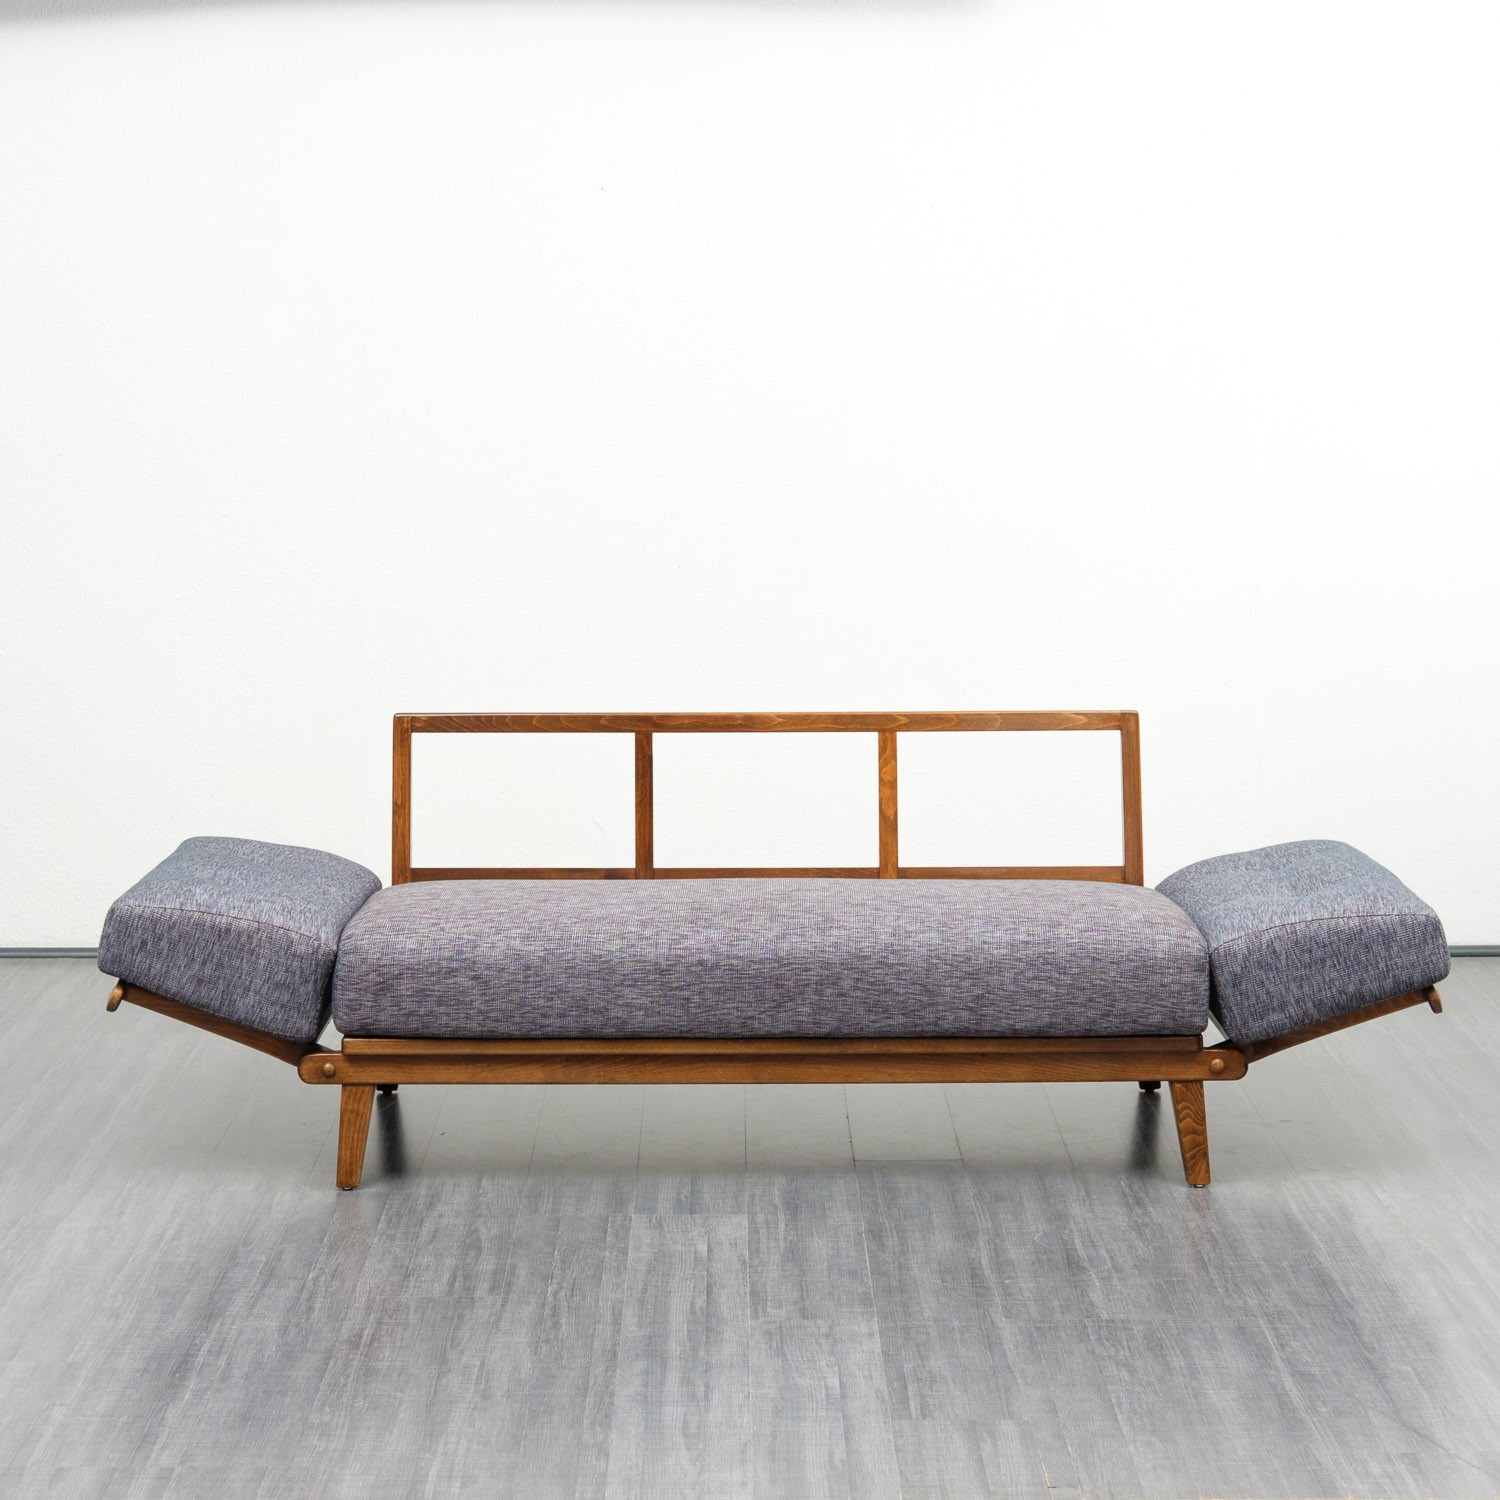 Petite Banquette Design Vintage Small Stained Beech Frame Daybed Sofa 1950s